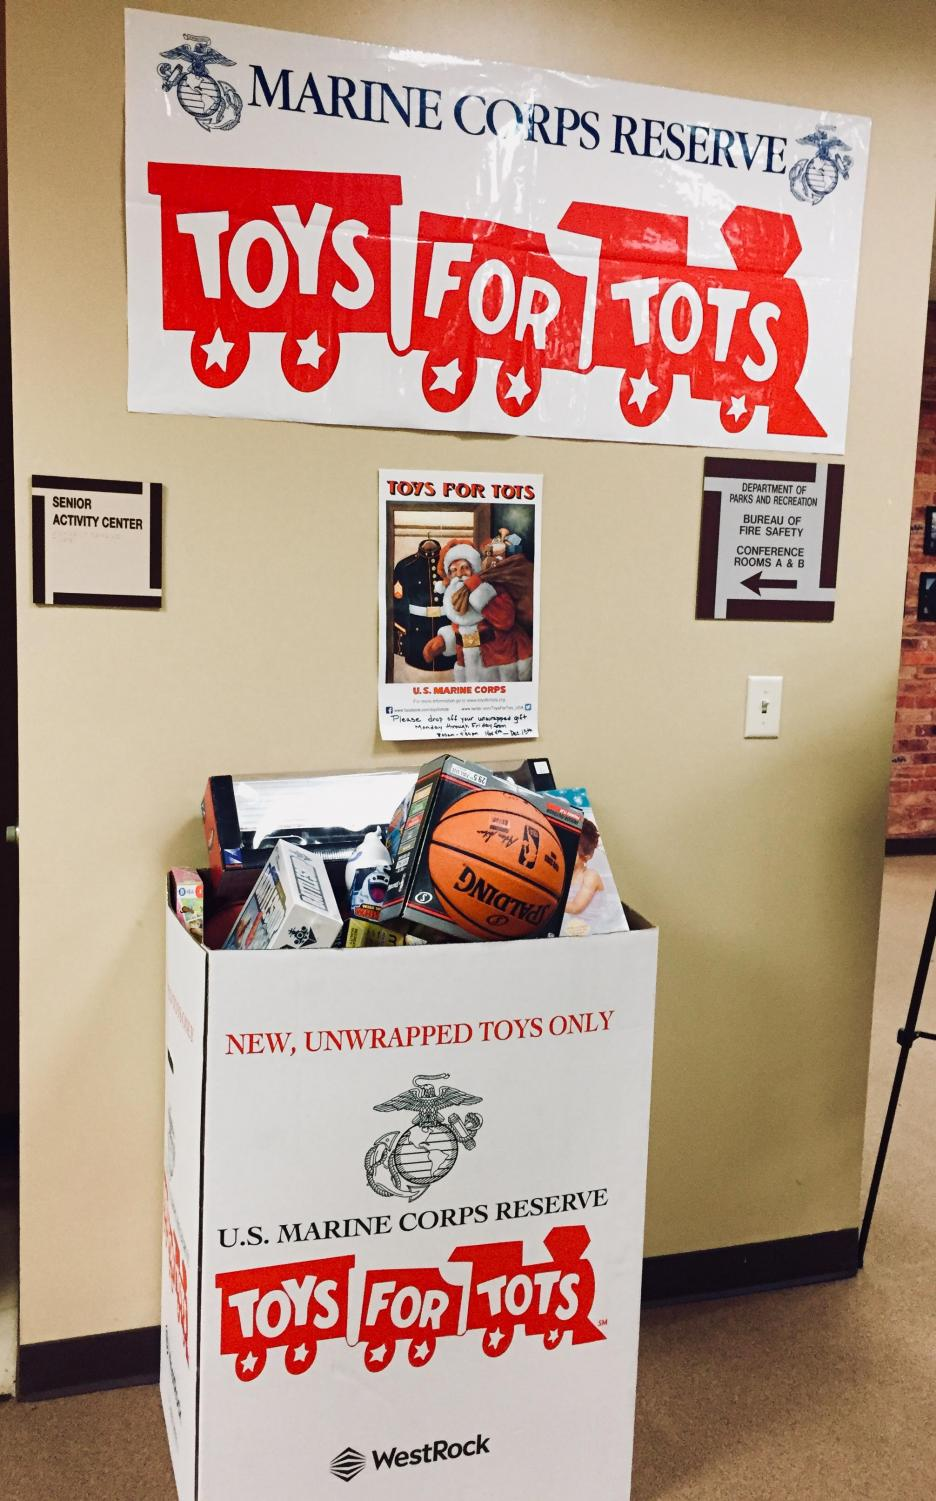 Toys for Tots donation drop-off box at the Hillsborough Municipal Building.